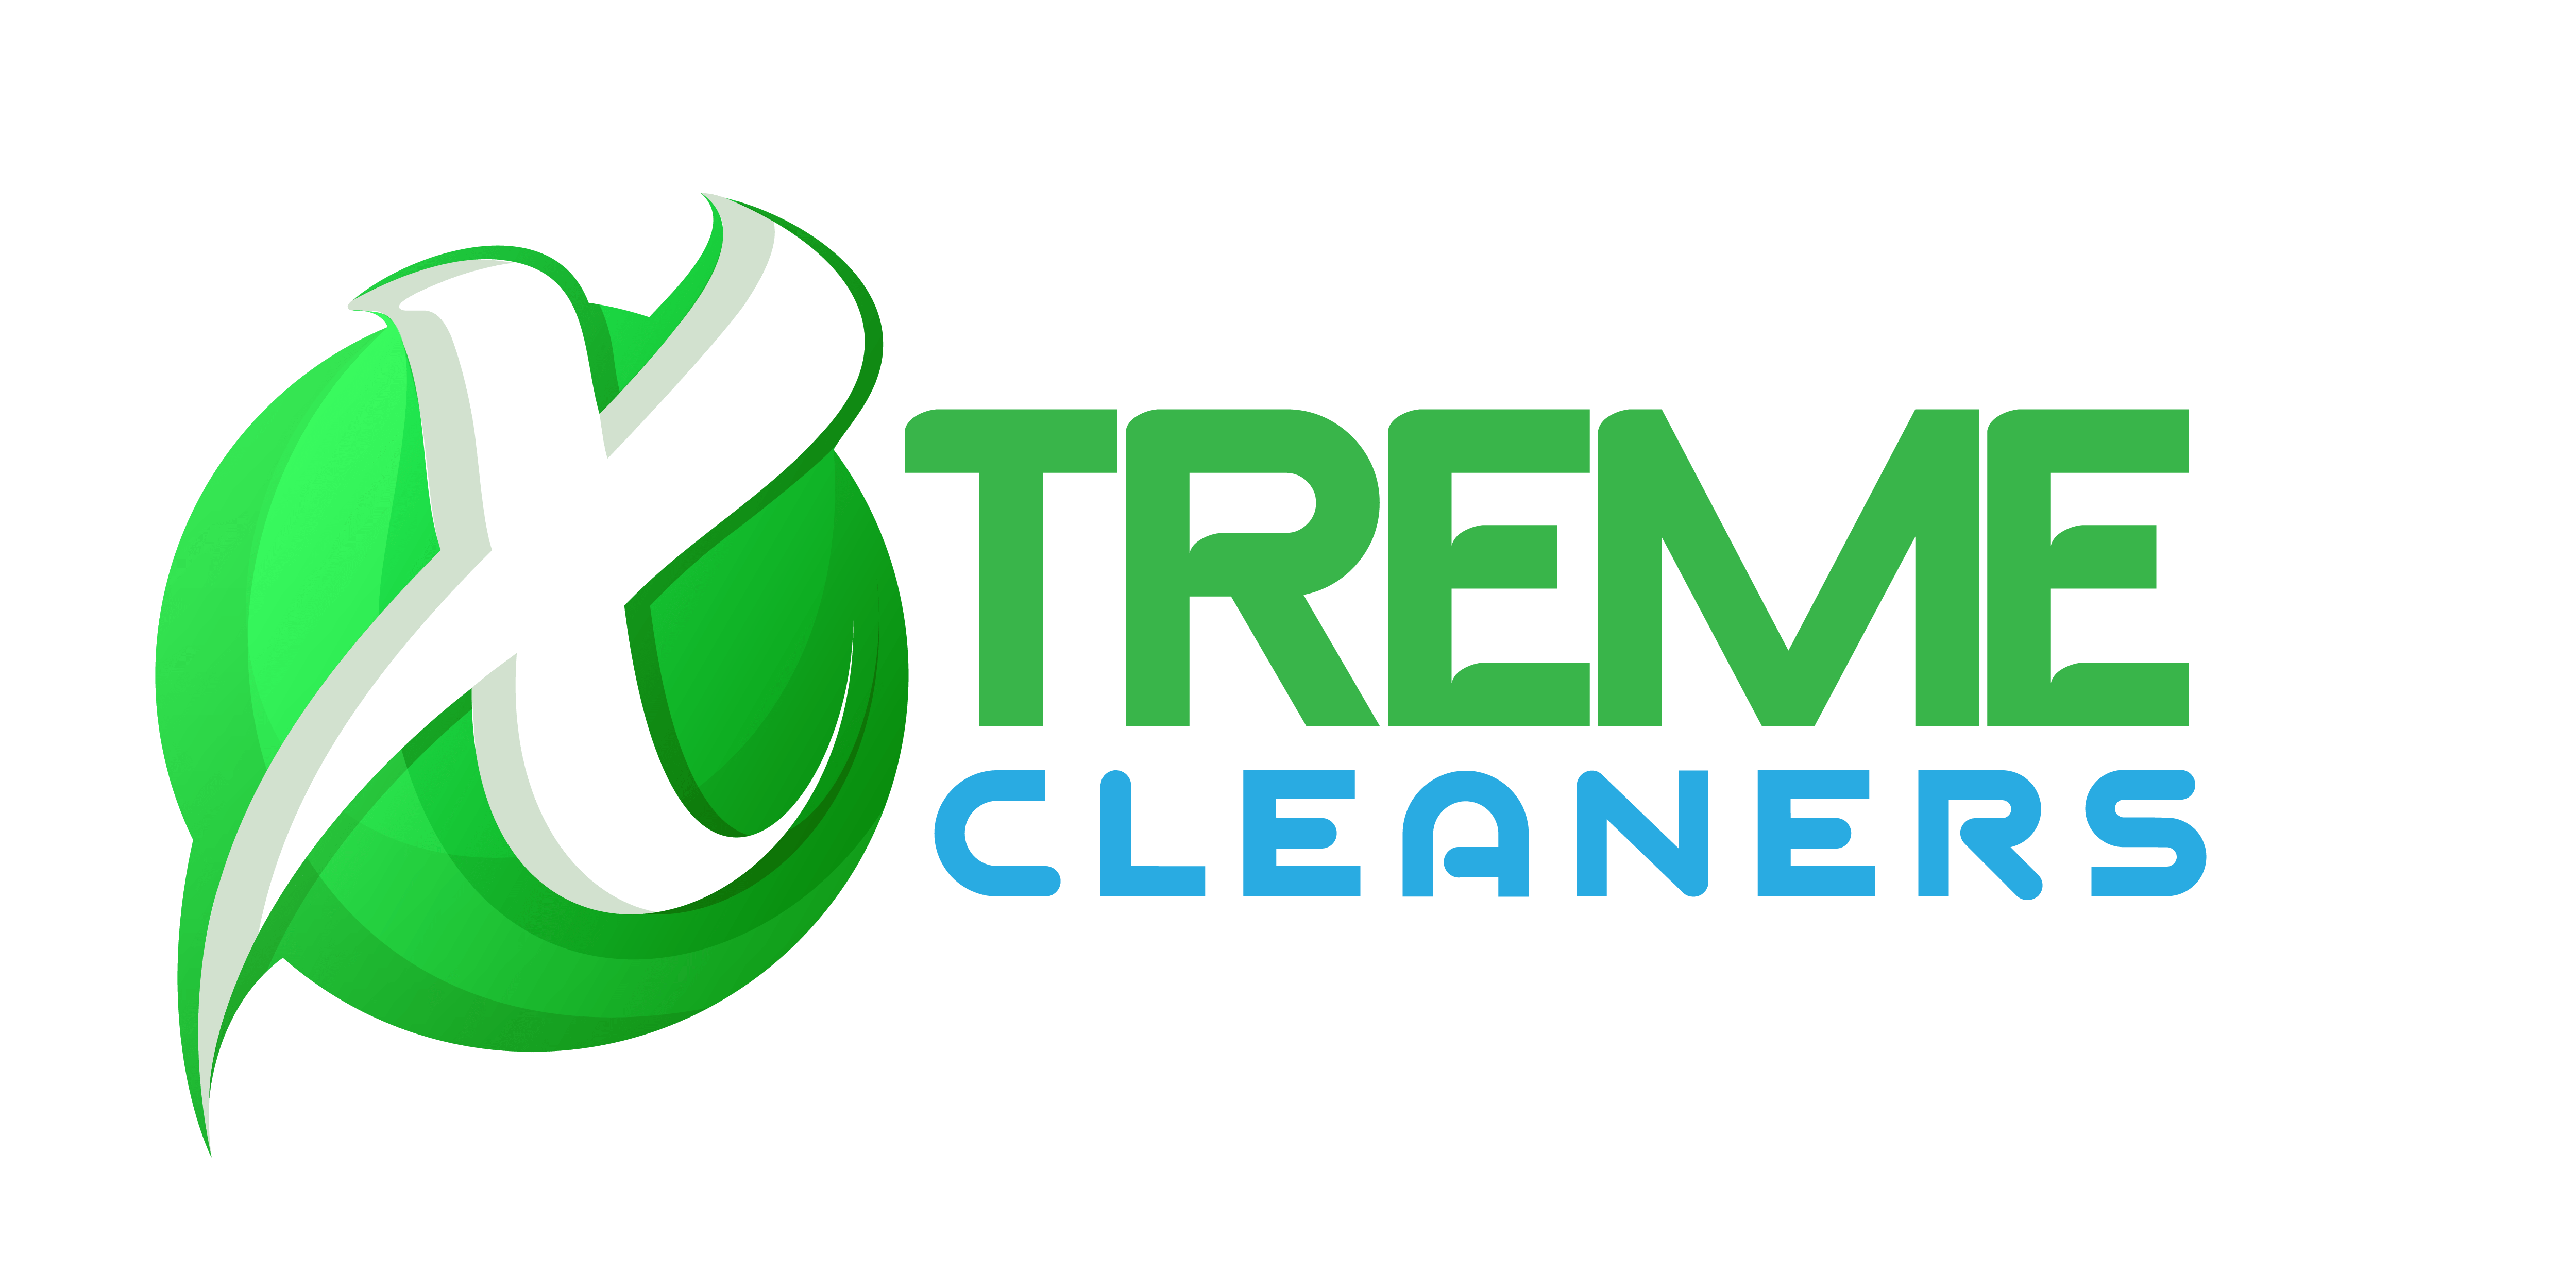 Xtreme Cleaners, Professional Cleaning Services